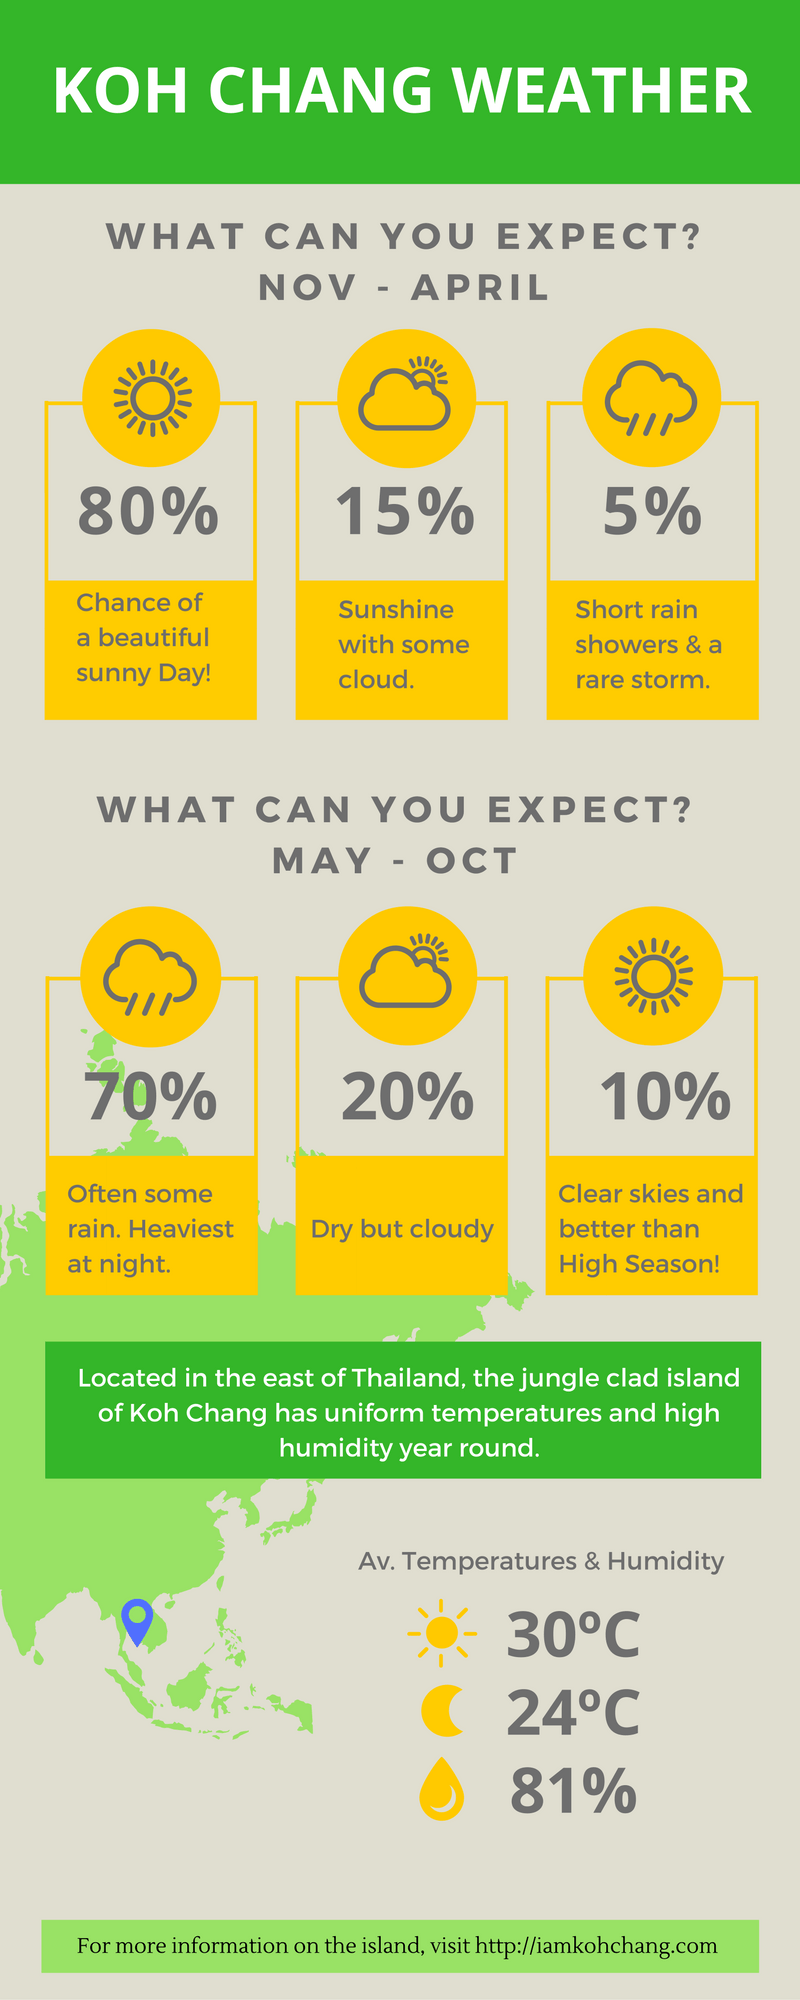 Koh Chang Weather Infographic